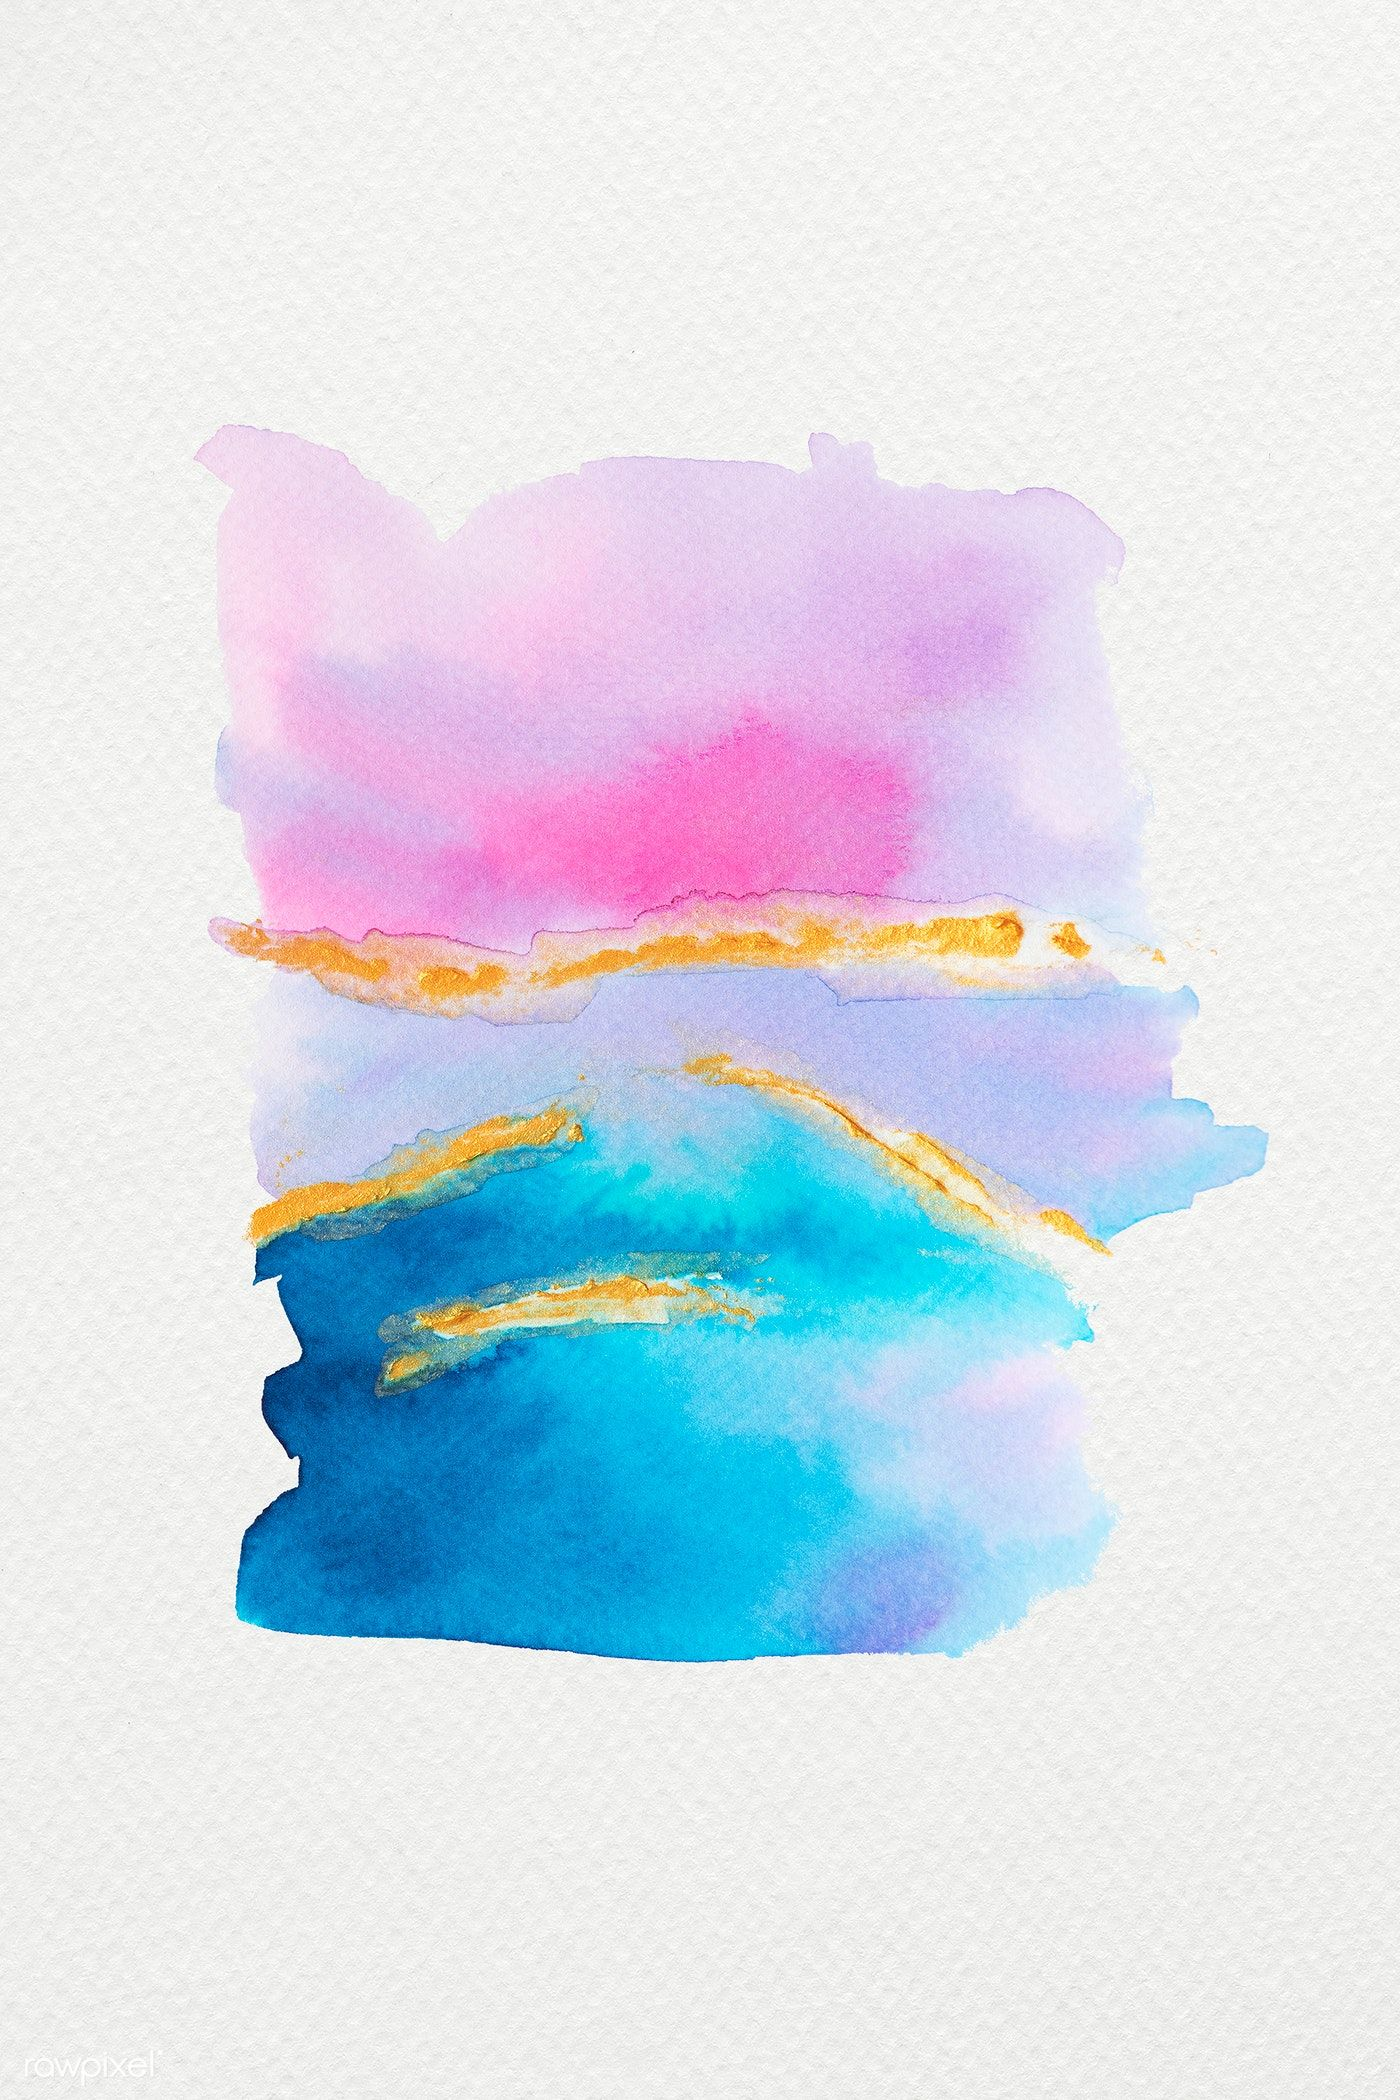 Colorful Shimmering Watercolor Brush Strokes Illustration Free